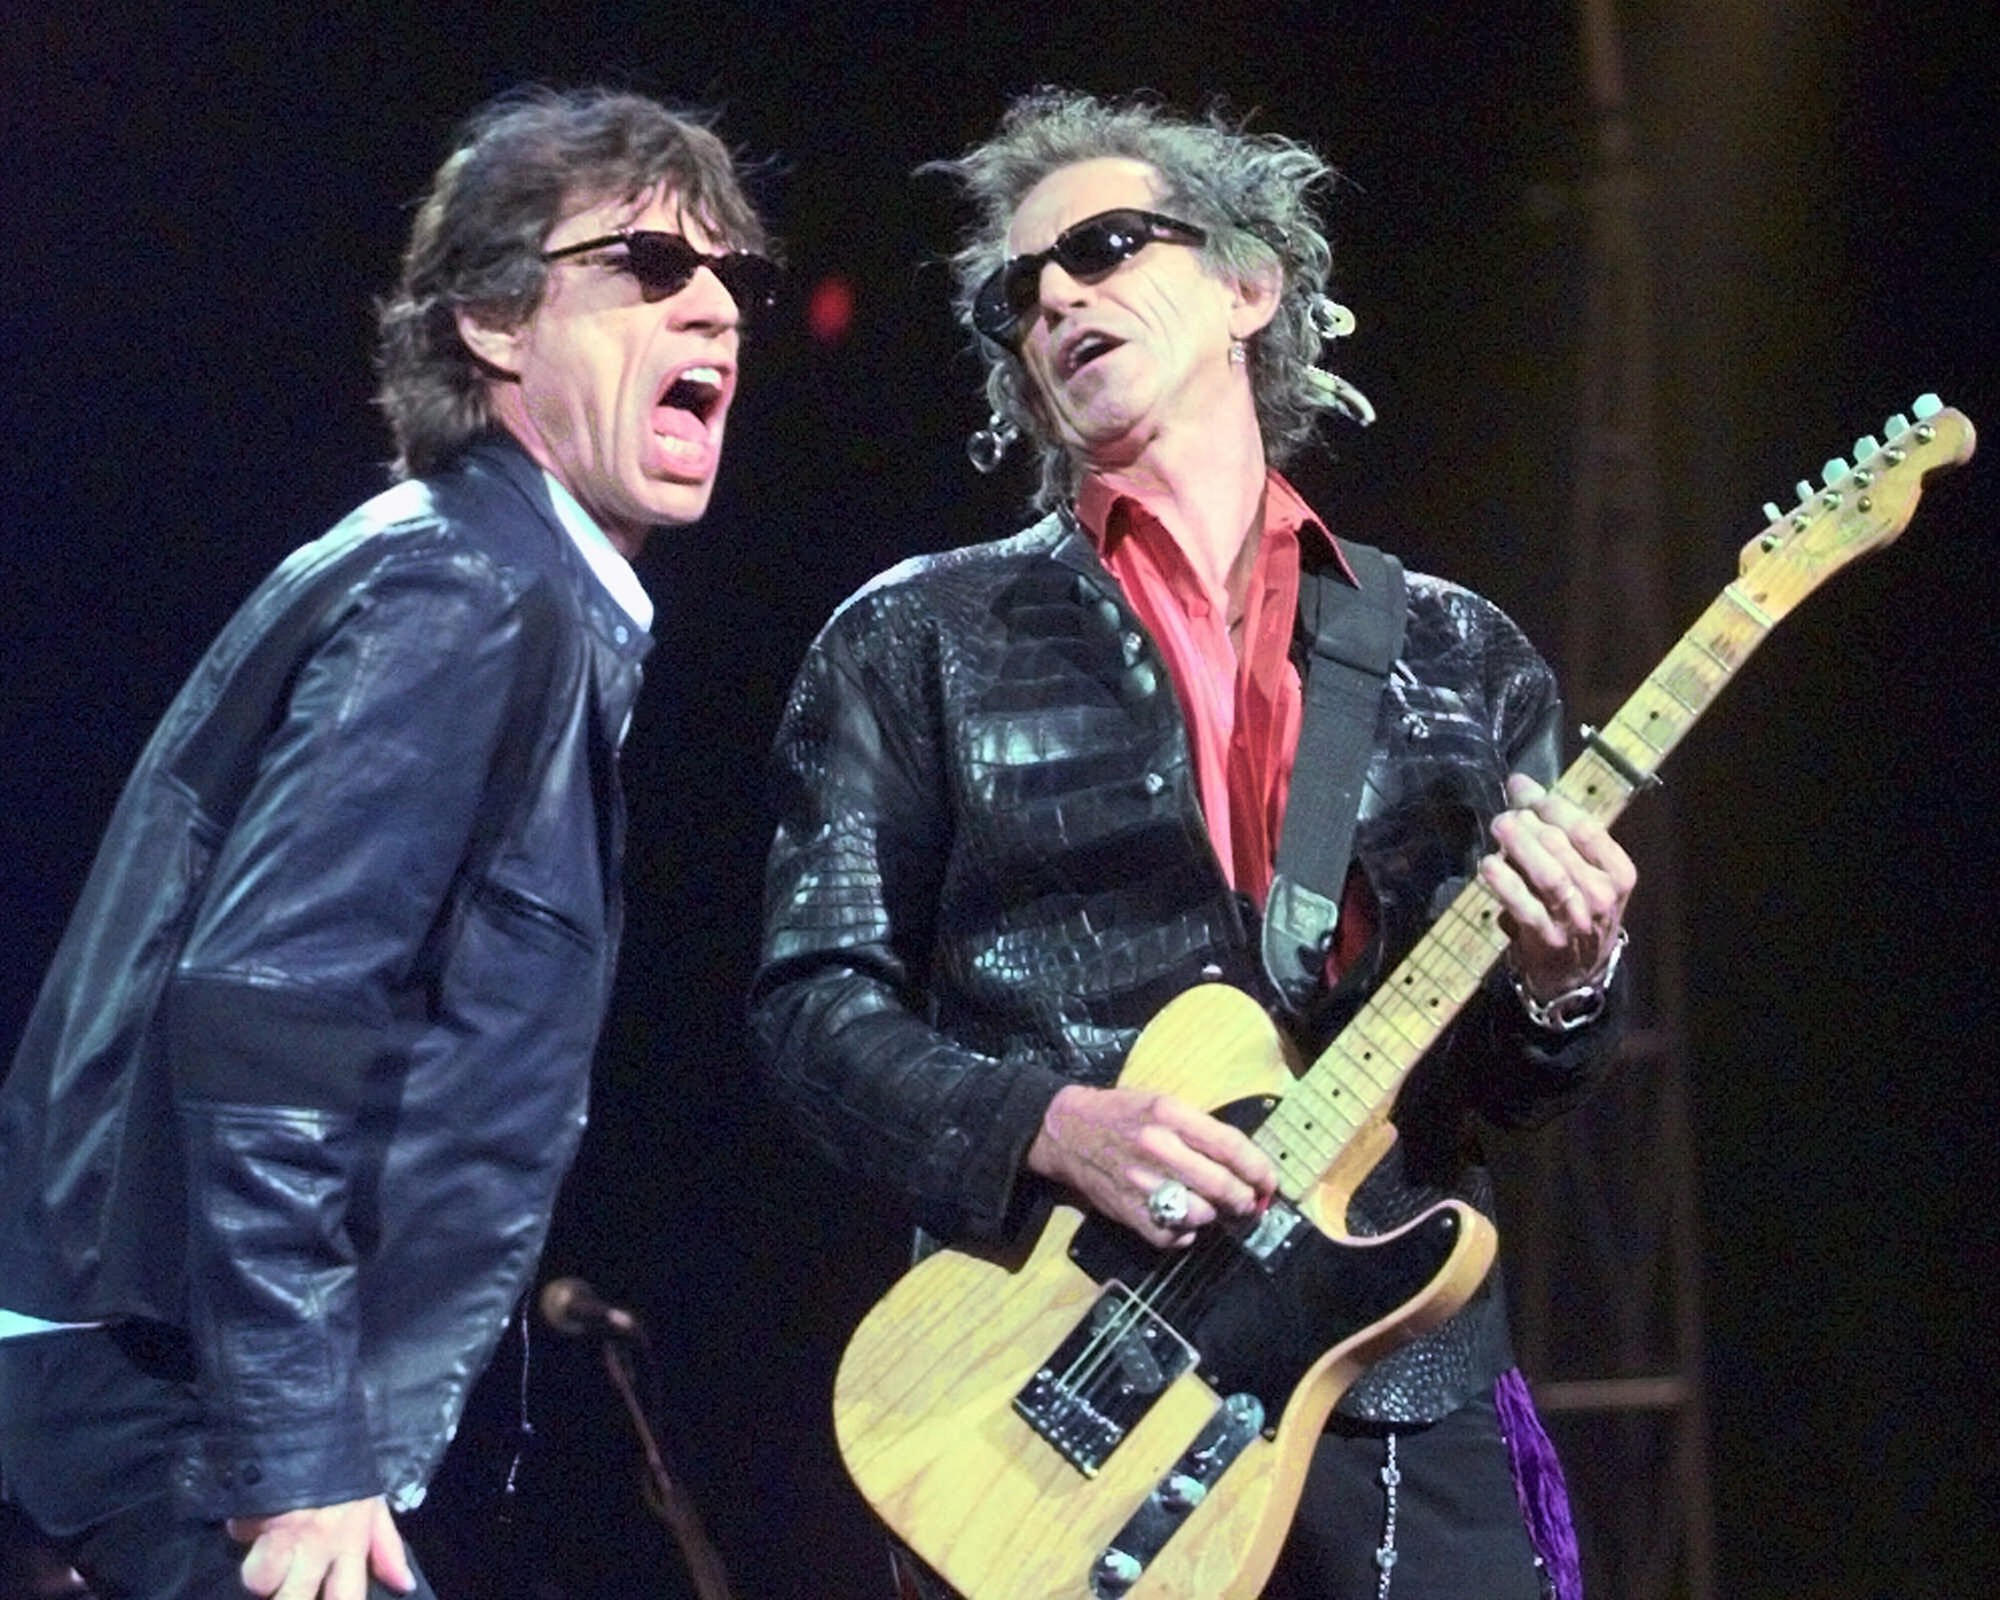 Rolling Stones lead singer Mick Jagger, left, and guitarist Keith Richards, in a 1999 file photo.